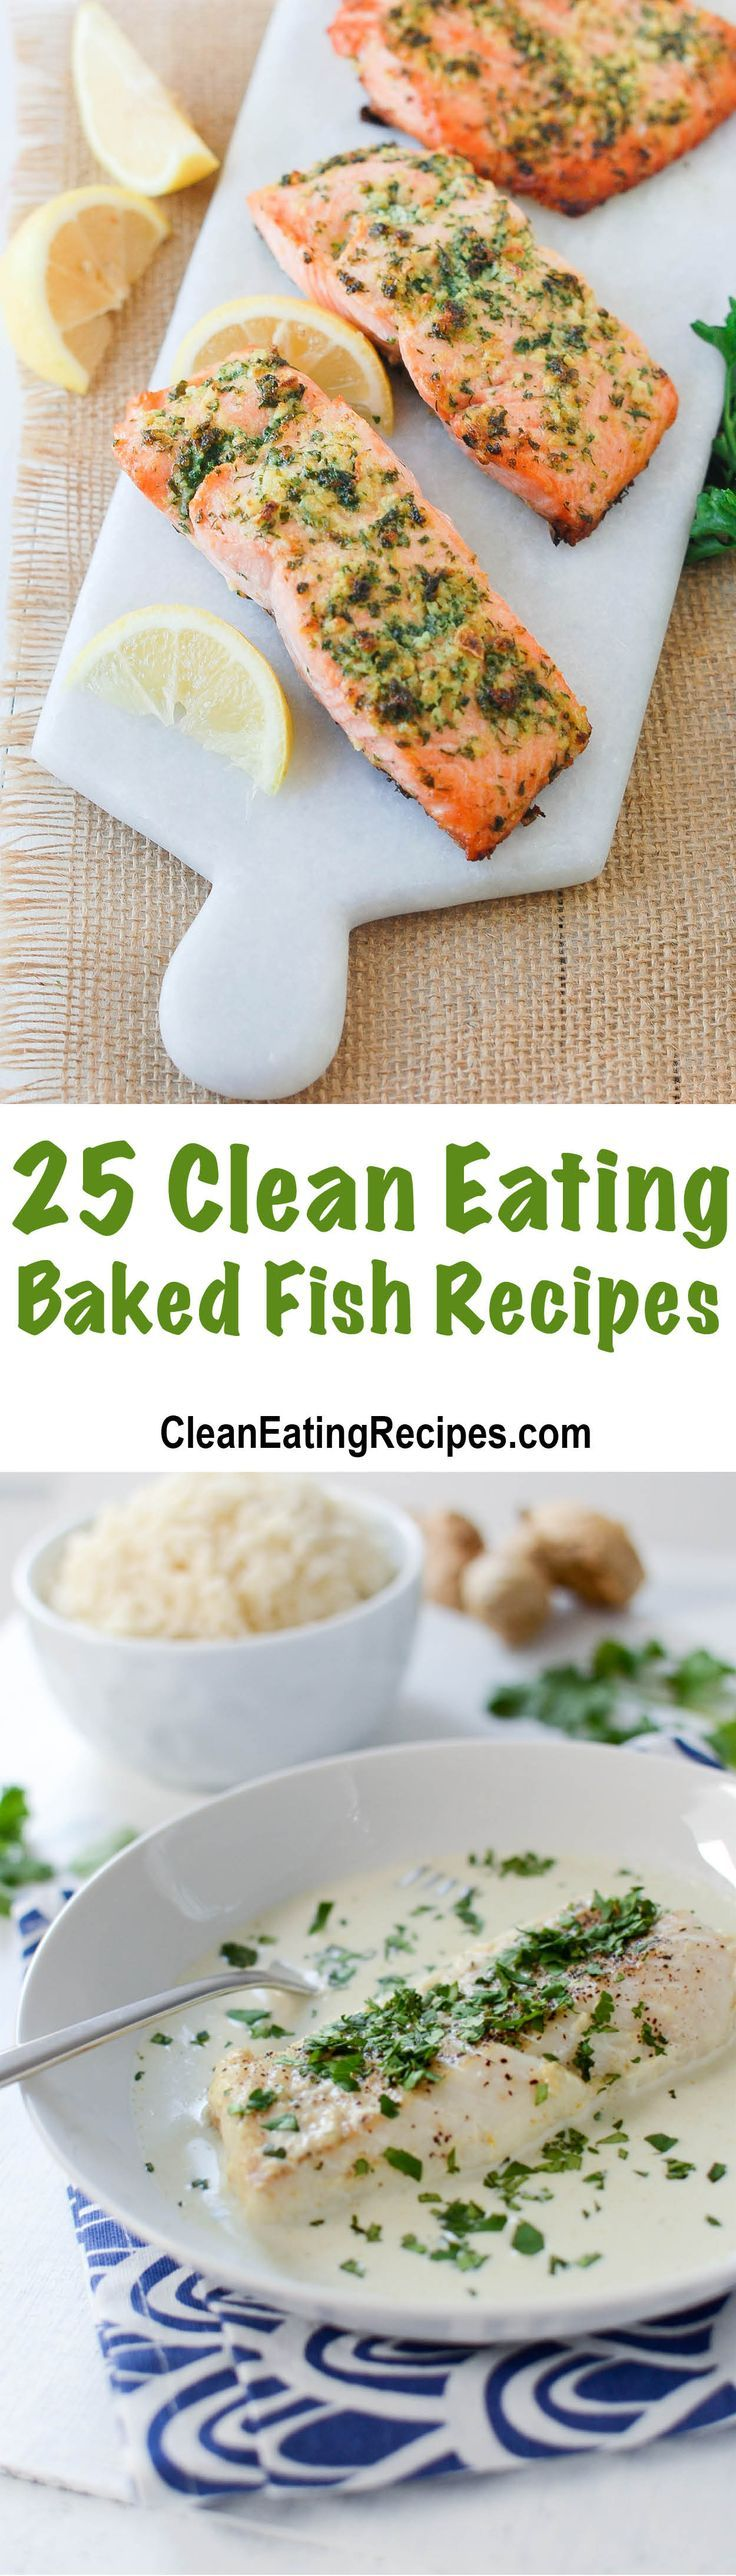 1000 ideas about beautiful images on pinterest most for Cleanest fish to eat